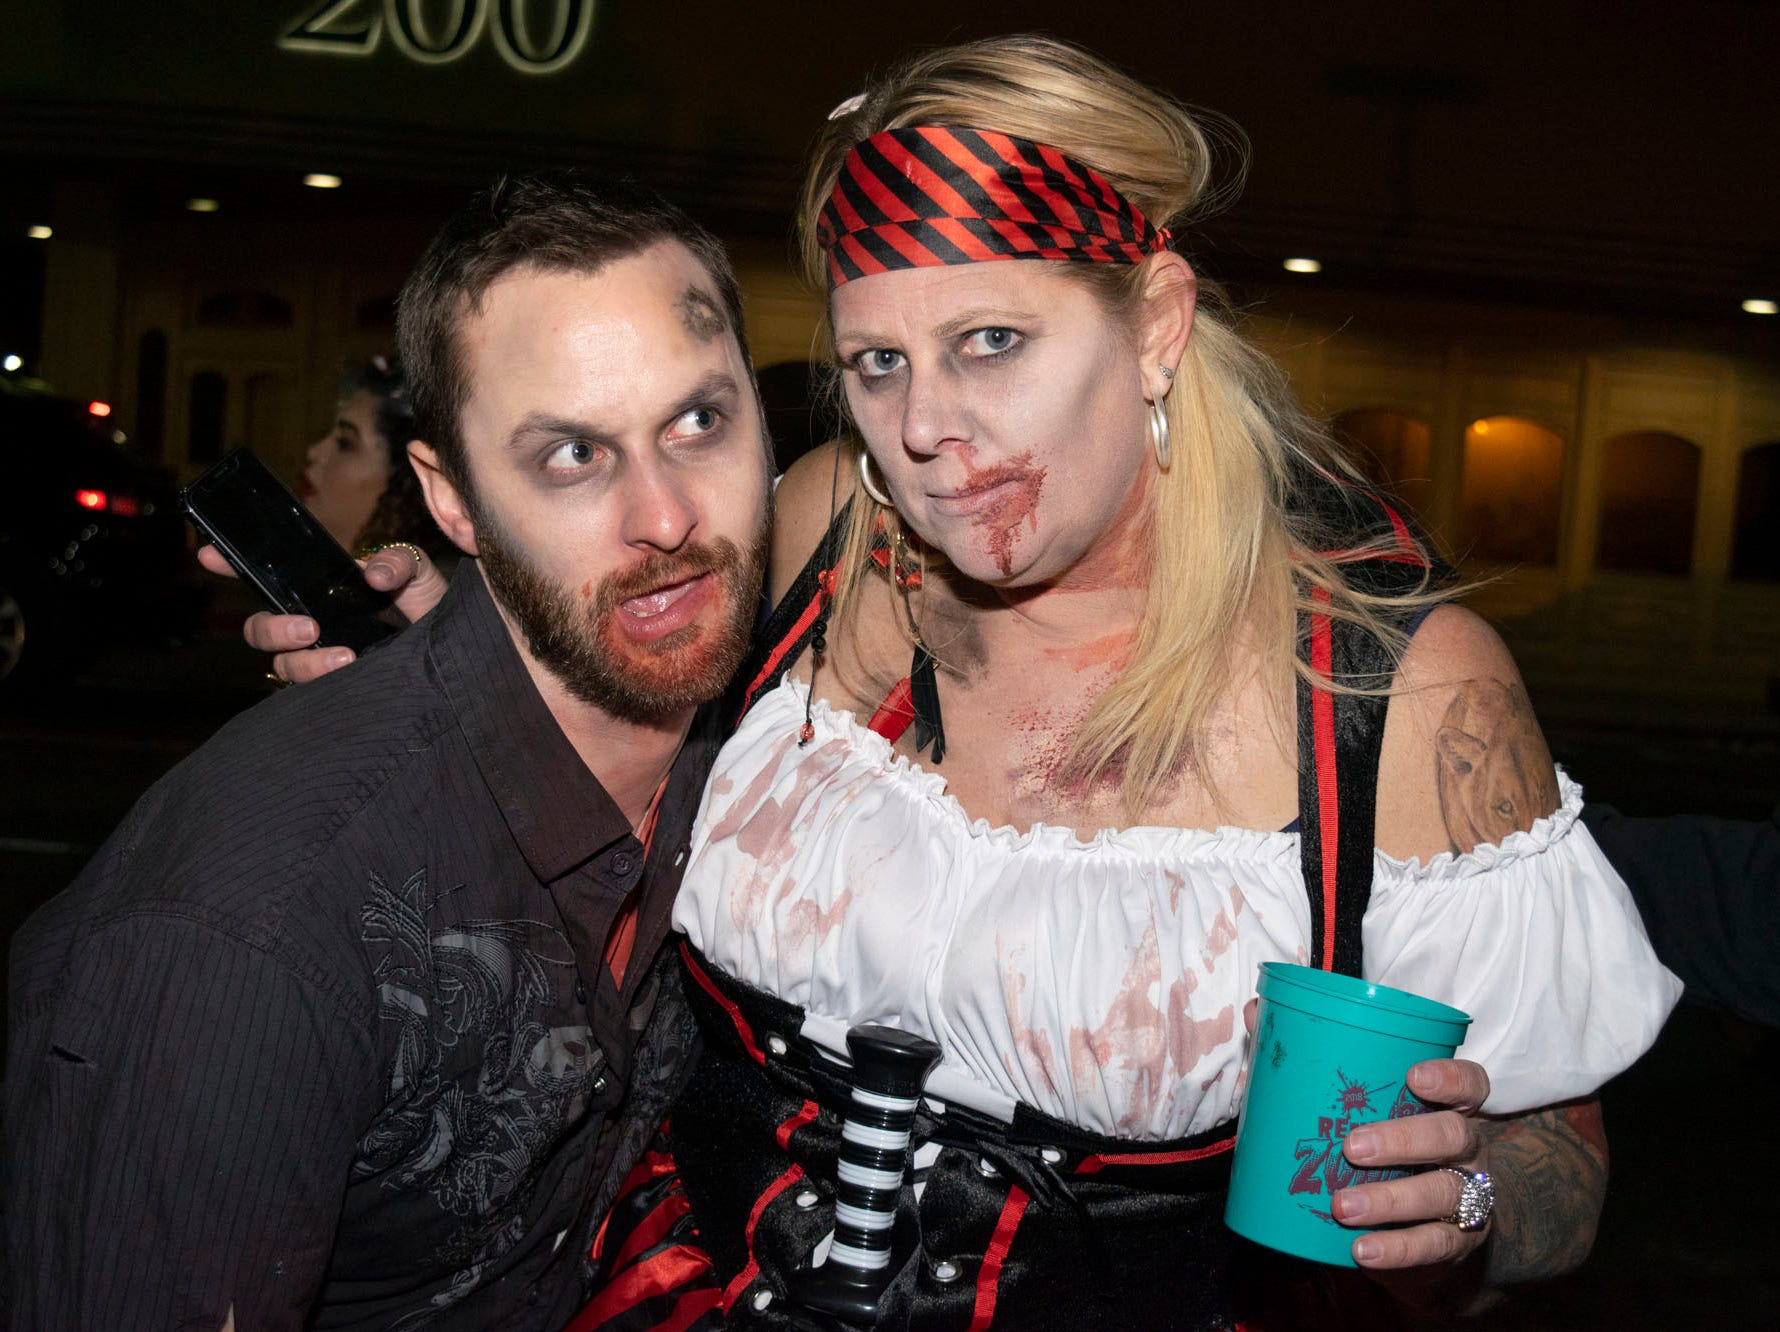 Robert Kimkley and Sandy Degiovanni attend the Zombie Crawl on Saturday, Oct. 20, 2018. Reno, Nev.